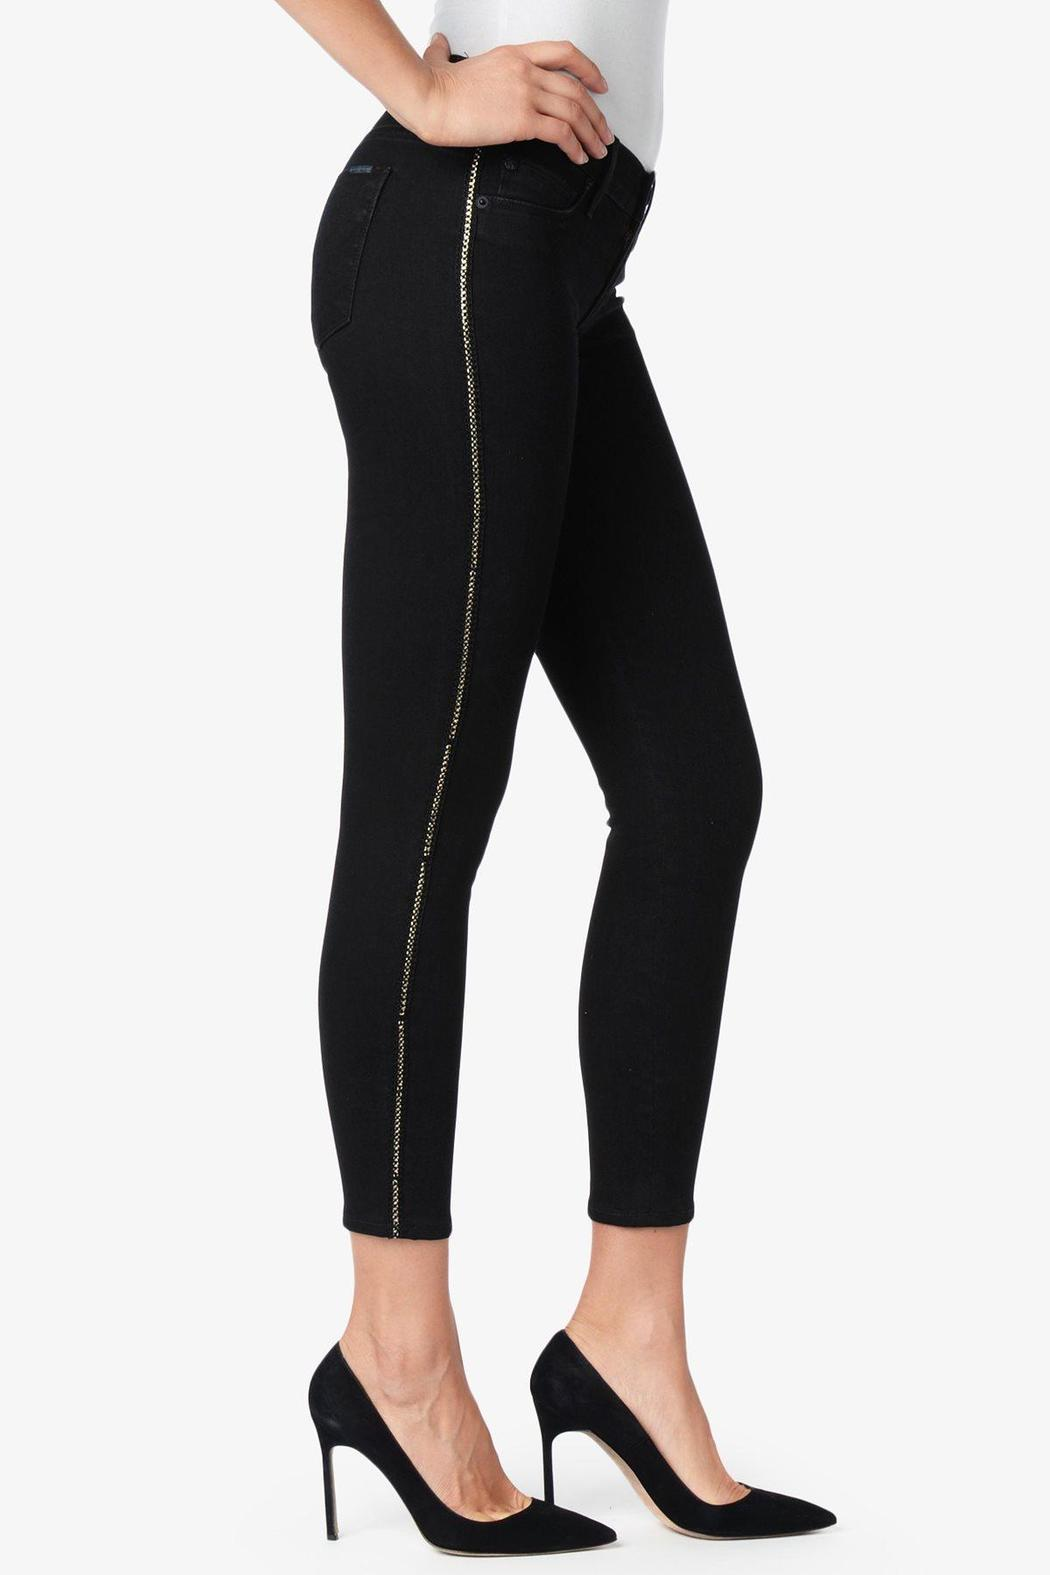 Hudson Jeans Chained Black Crop - Side Cropped Image